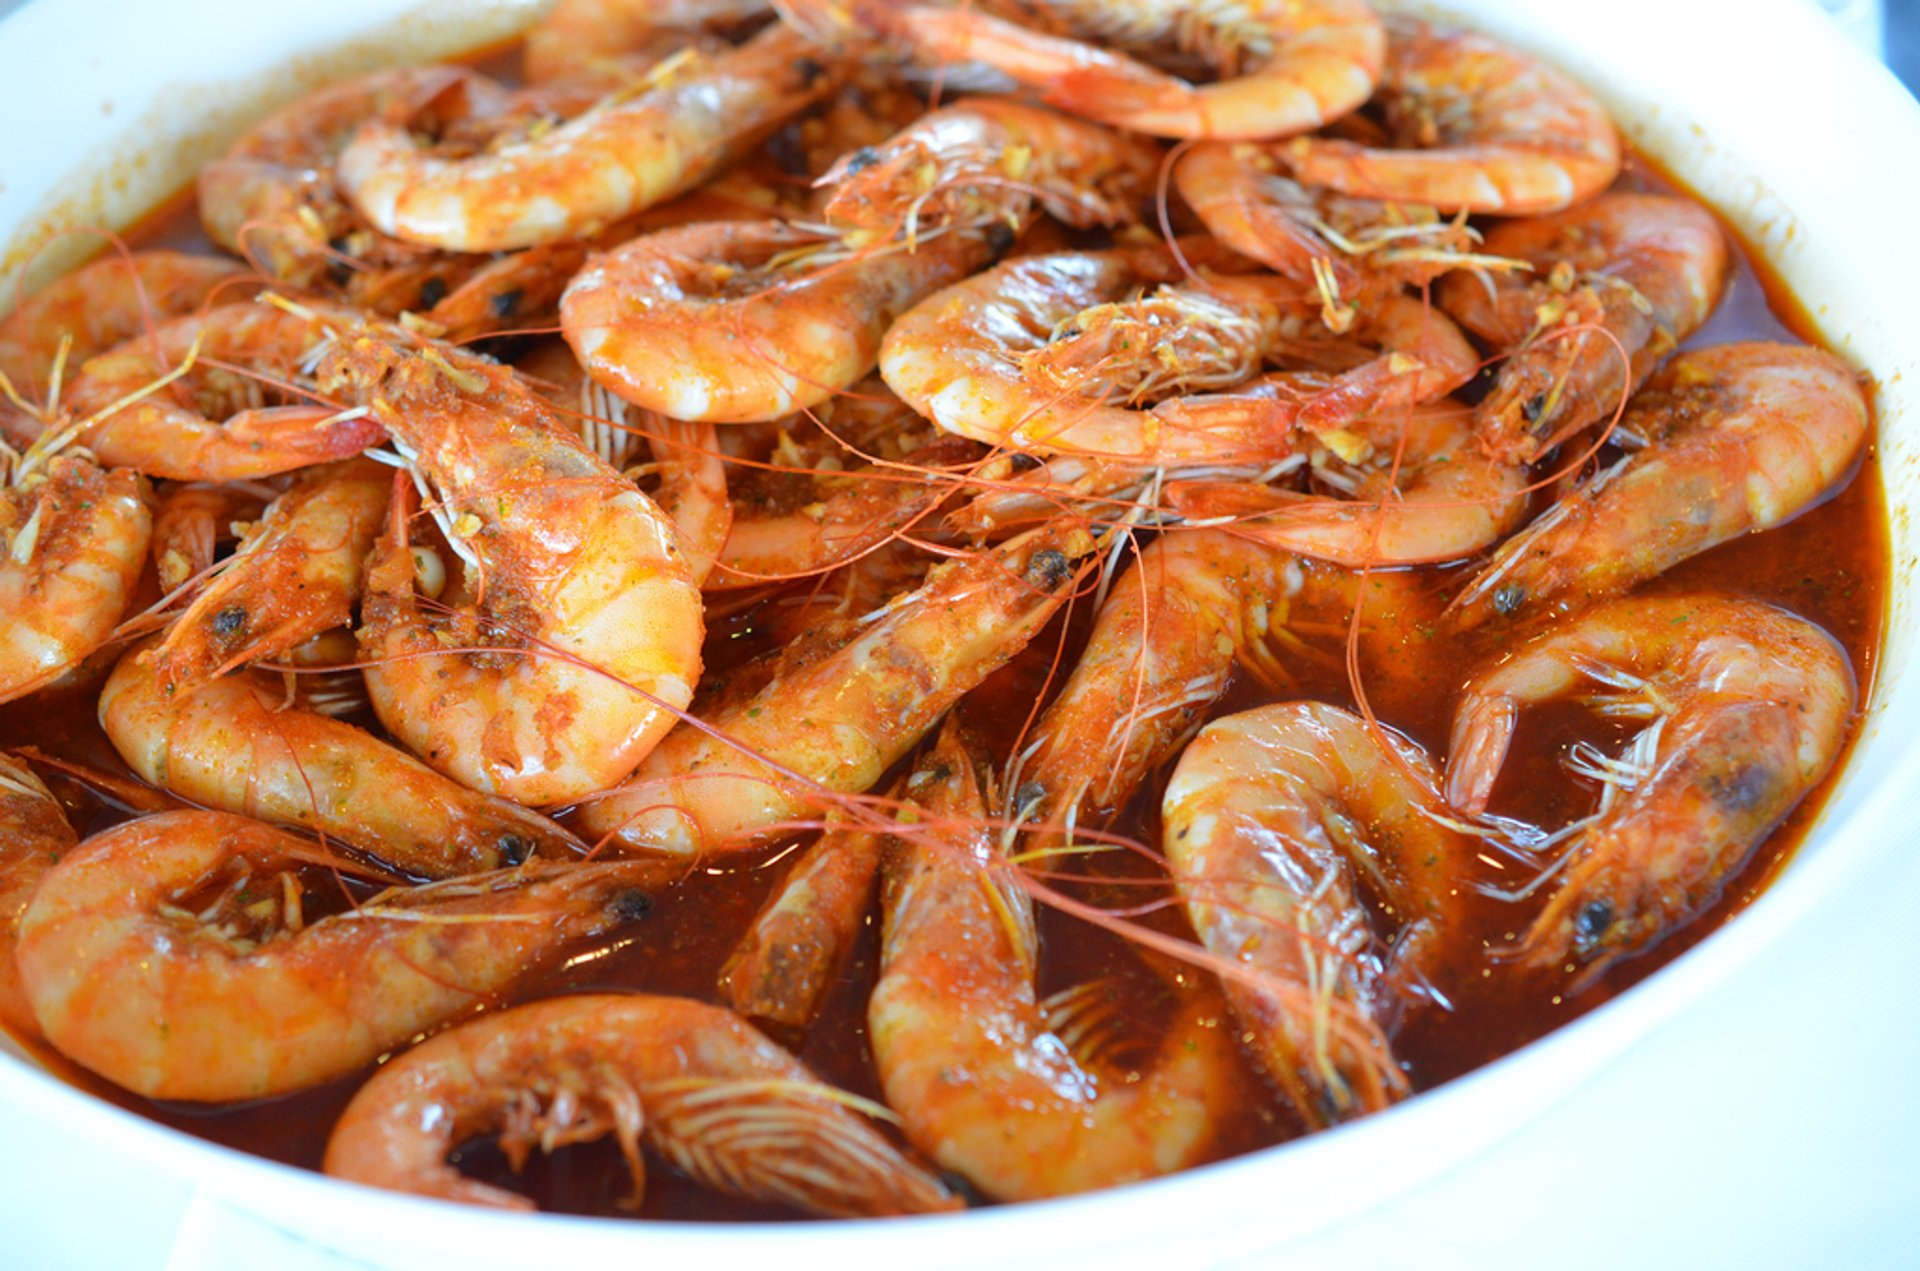 Shrimp Season in Texas 2019 – Rove me